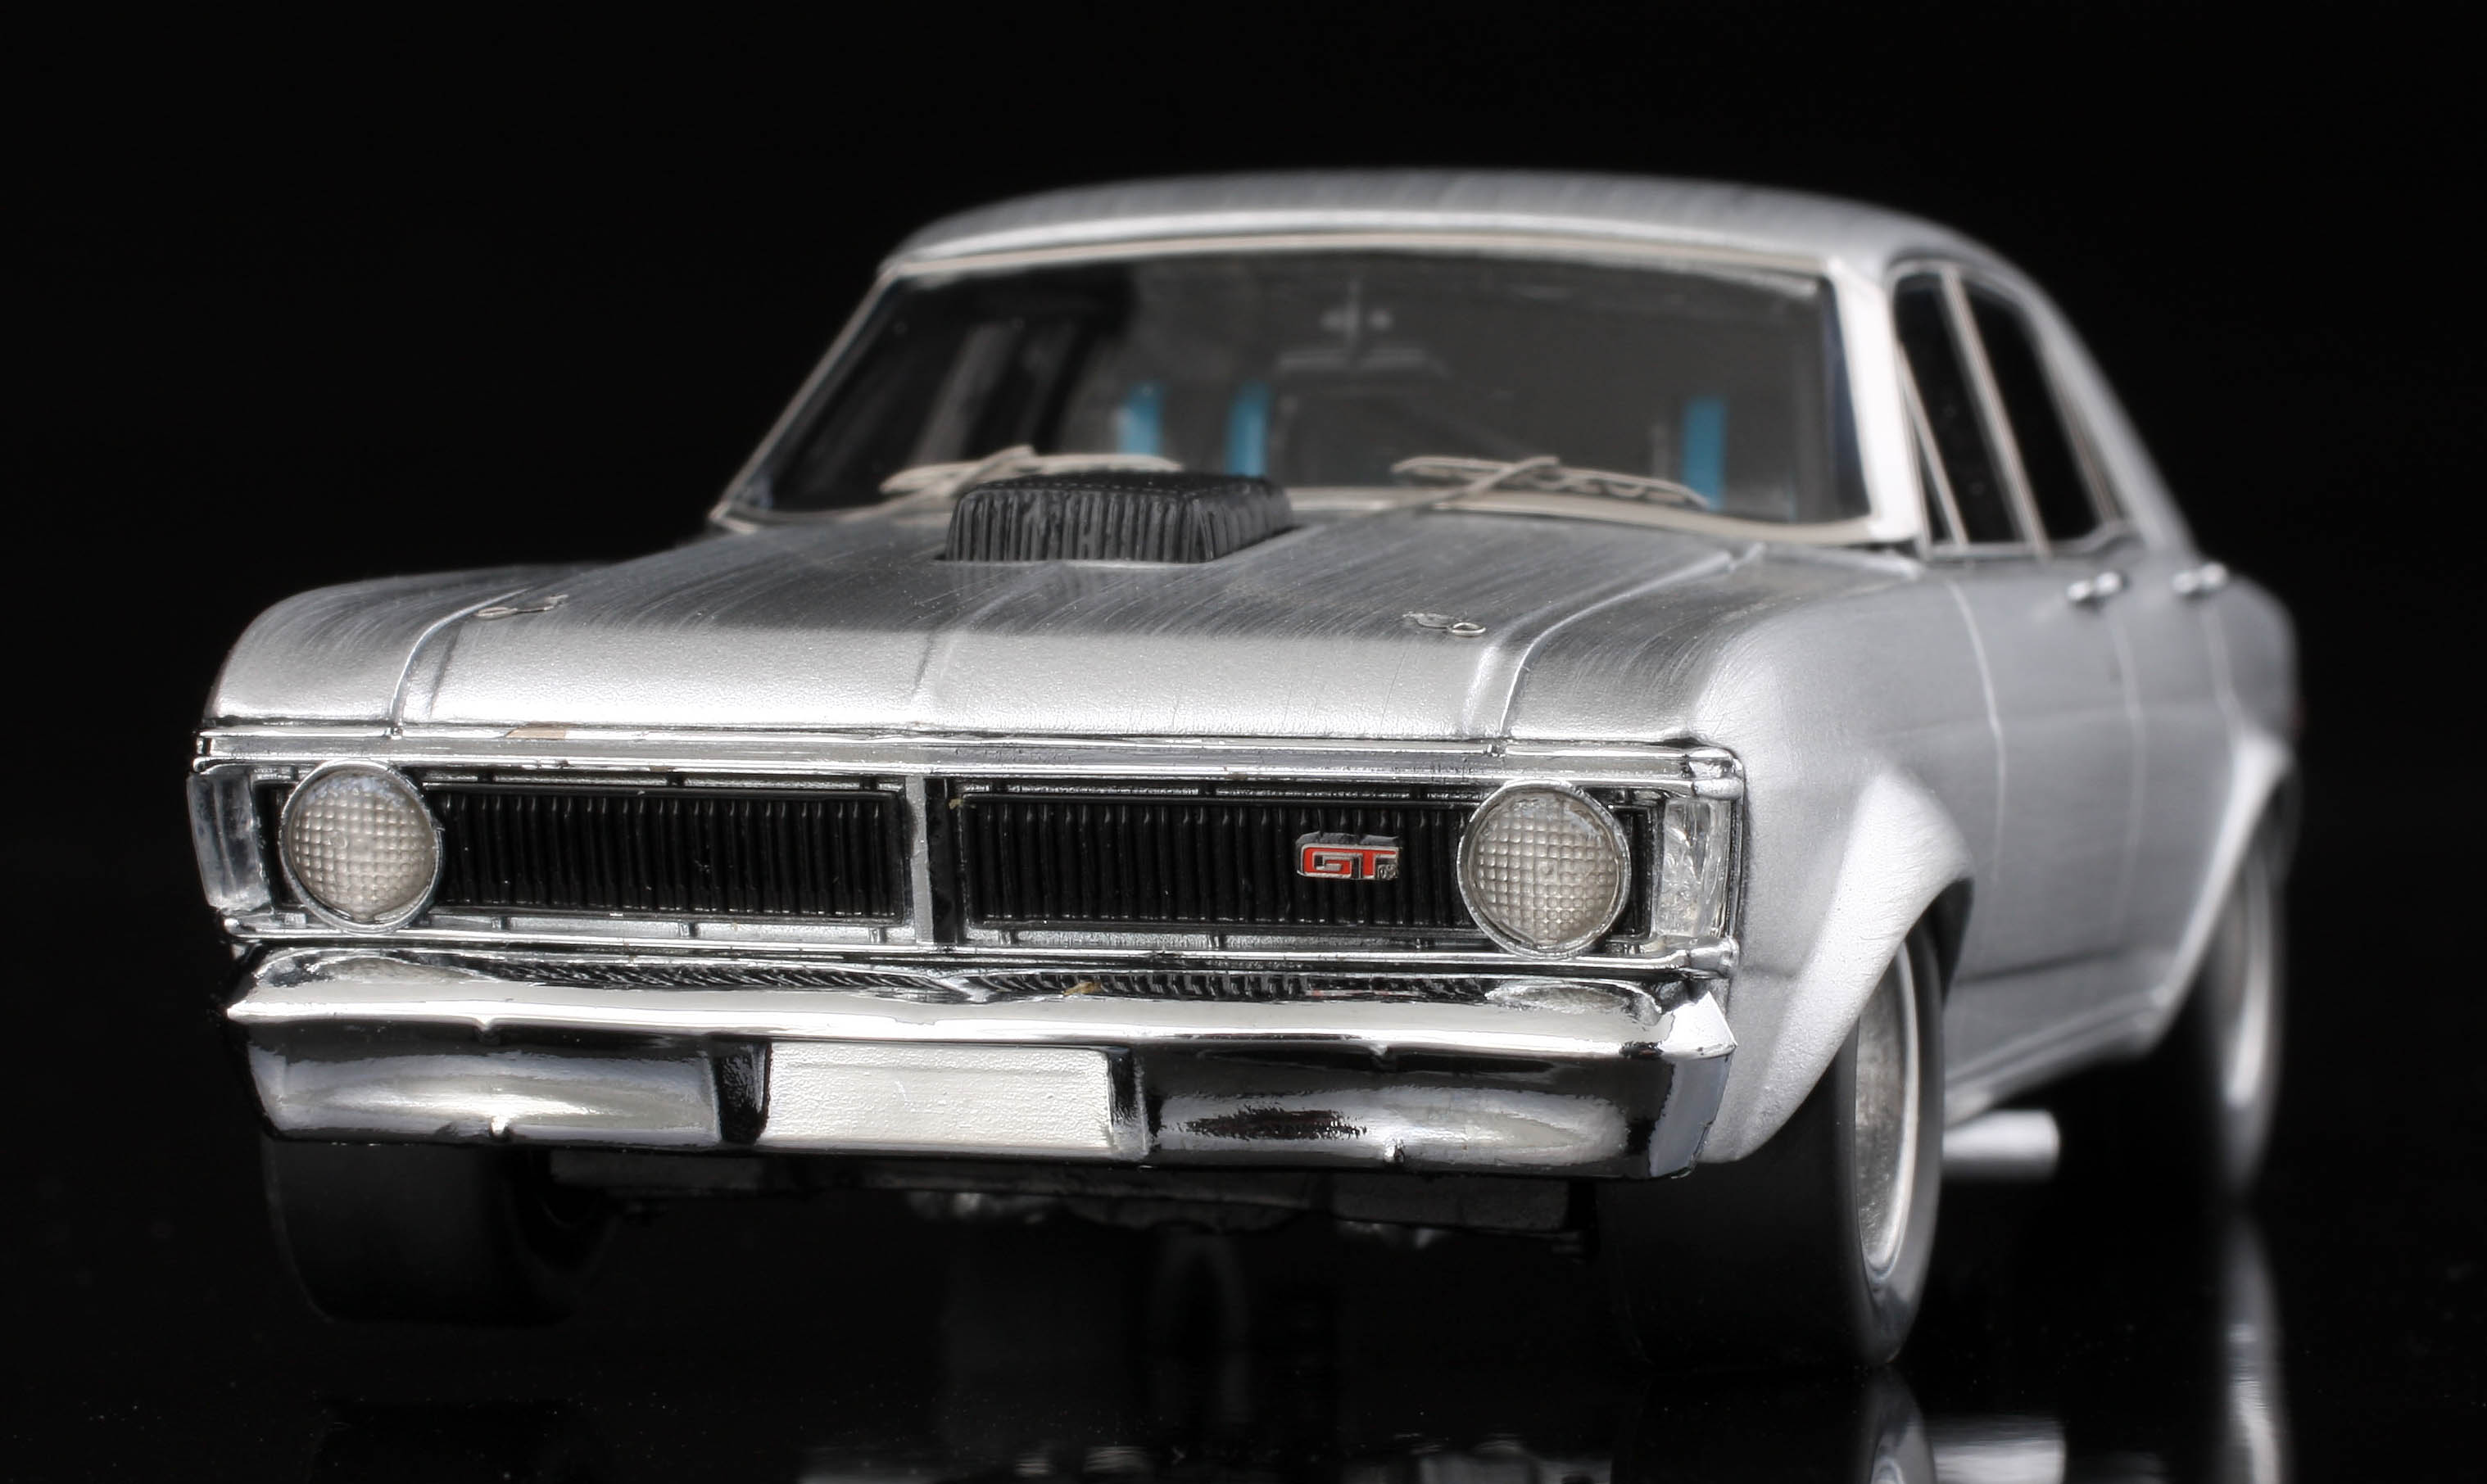 AMR - 1:43 'Real Steel' Ford Super Falcon Australia Model Replicas Resin Model Car